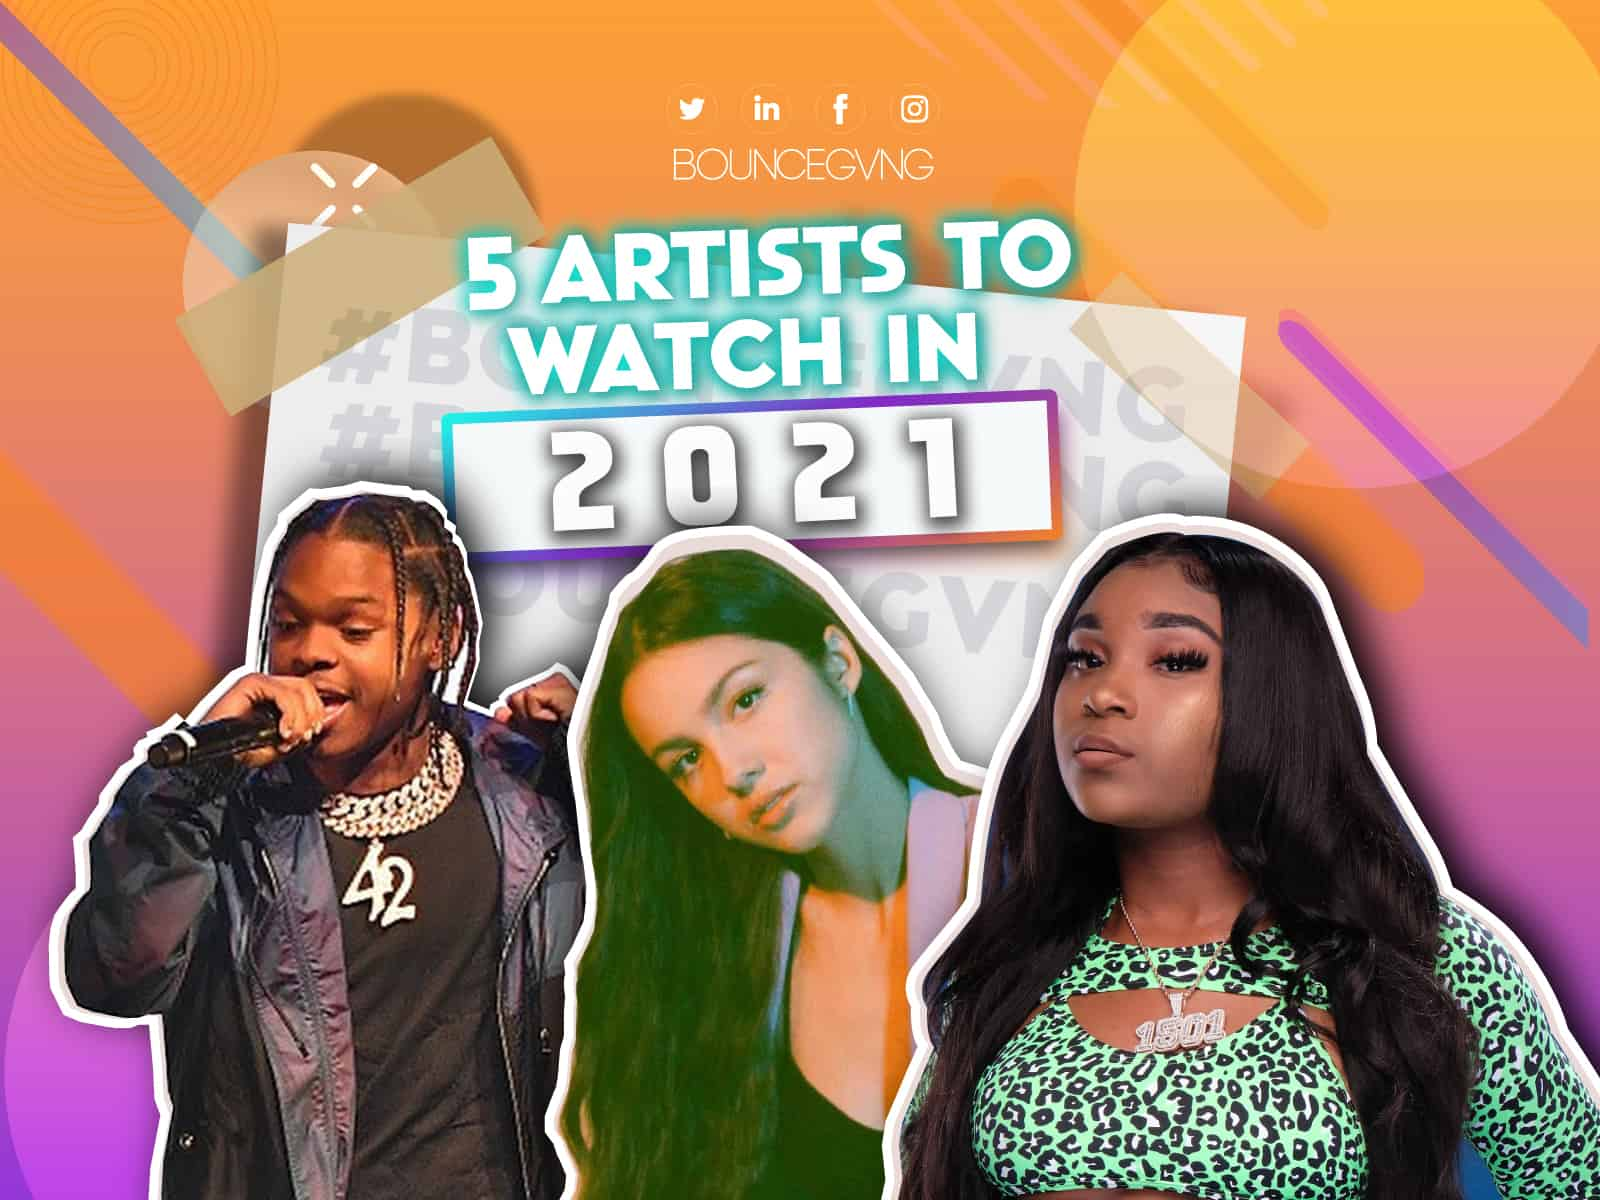 Artists to Watch in 2021